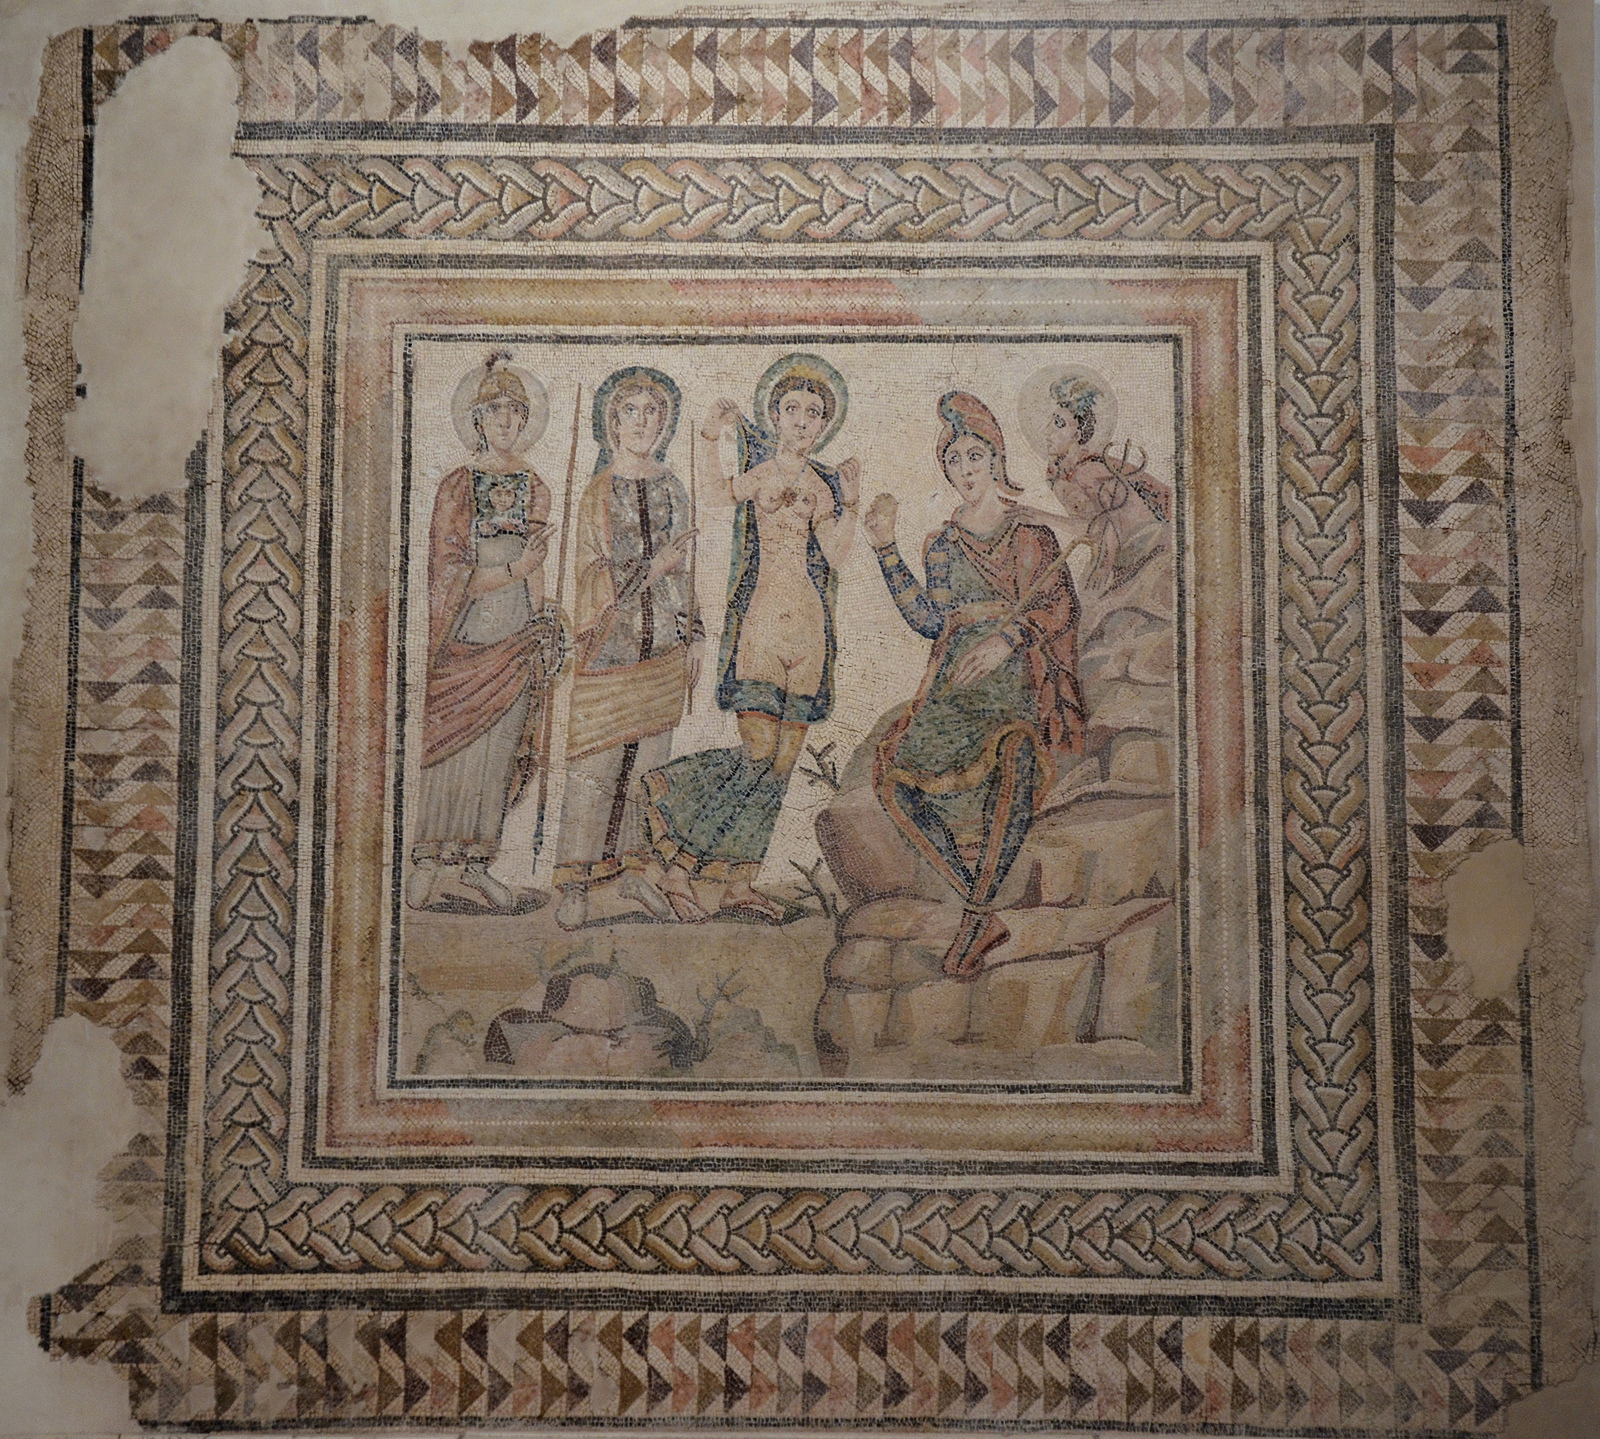 Mosaics of Spain's Roman Baetica Route: Carmona and Éjica